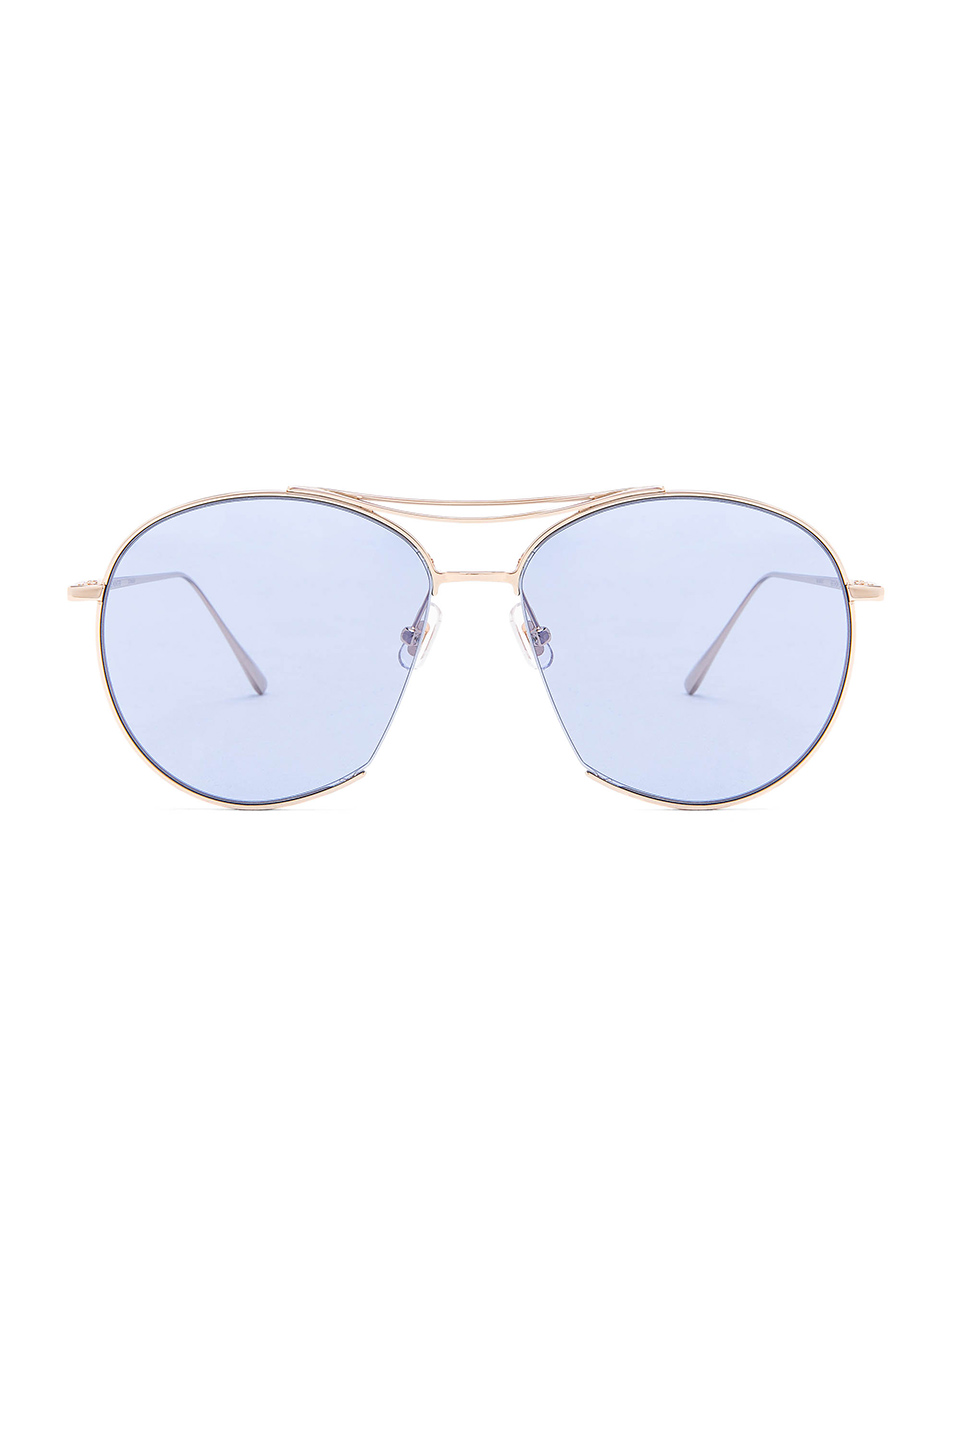 0838665648d45 Gentle Monster Jumping Jack 60Mm Aviator Sunglasses In Metallics ...